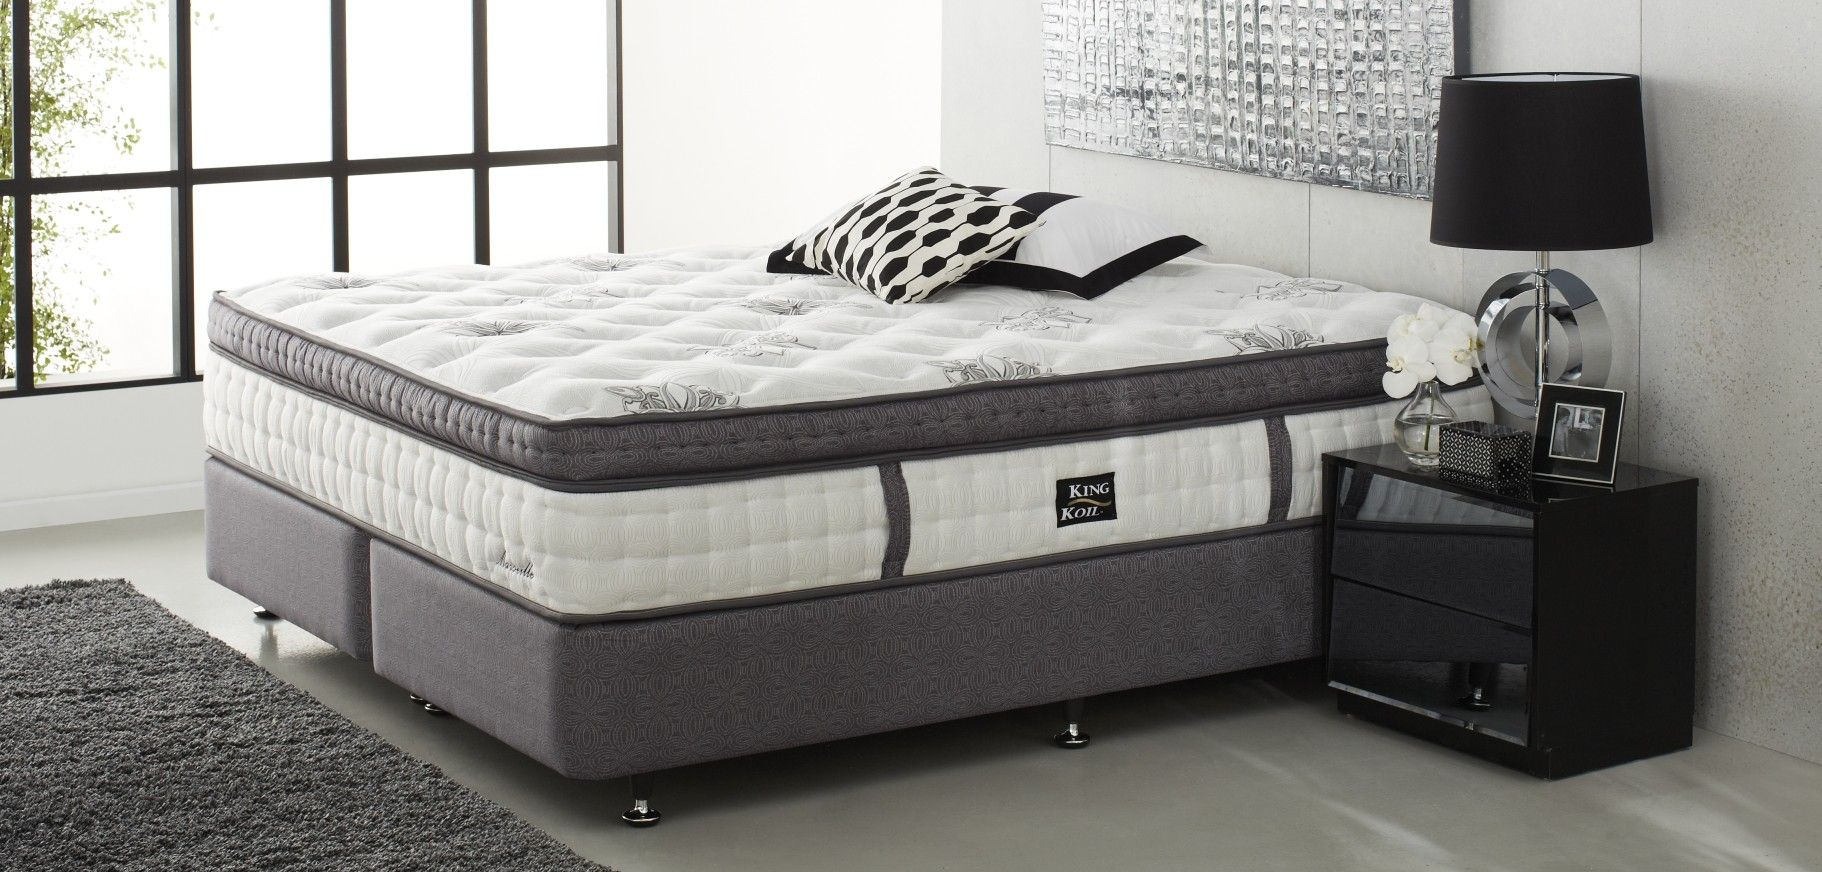 Marseille Bedroom Furniture King Koil Platinum Luxury Marseille Mk2 Winners Pinterest